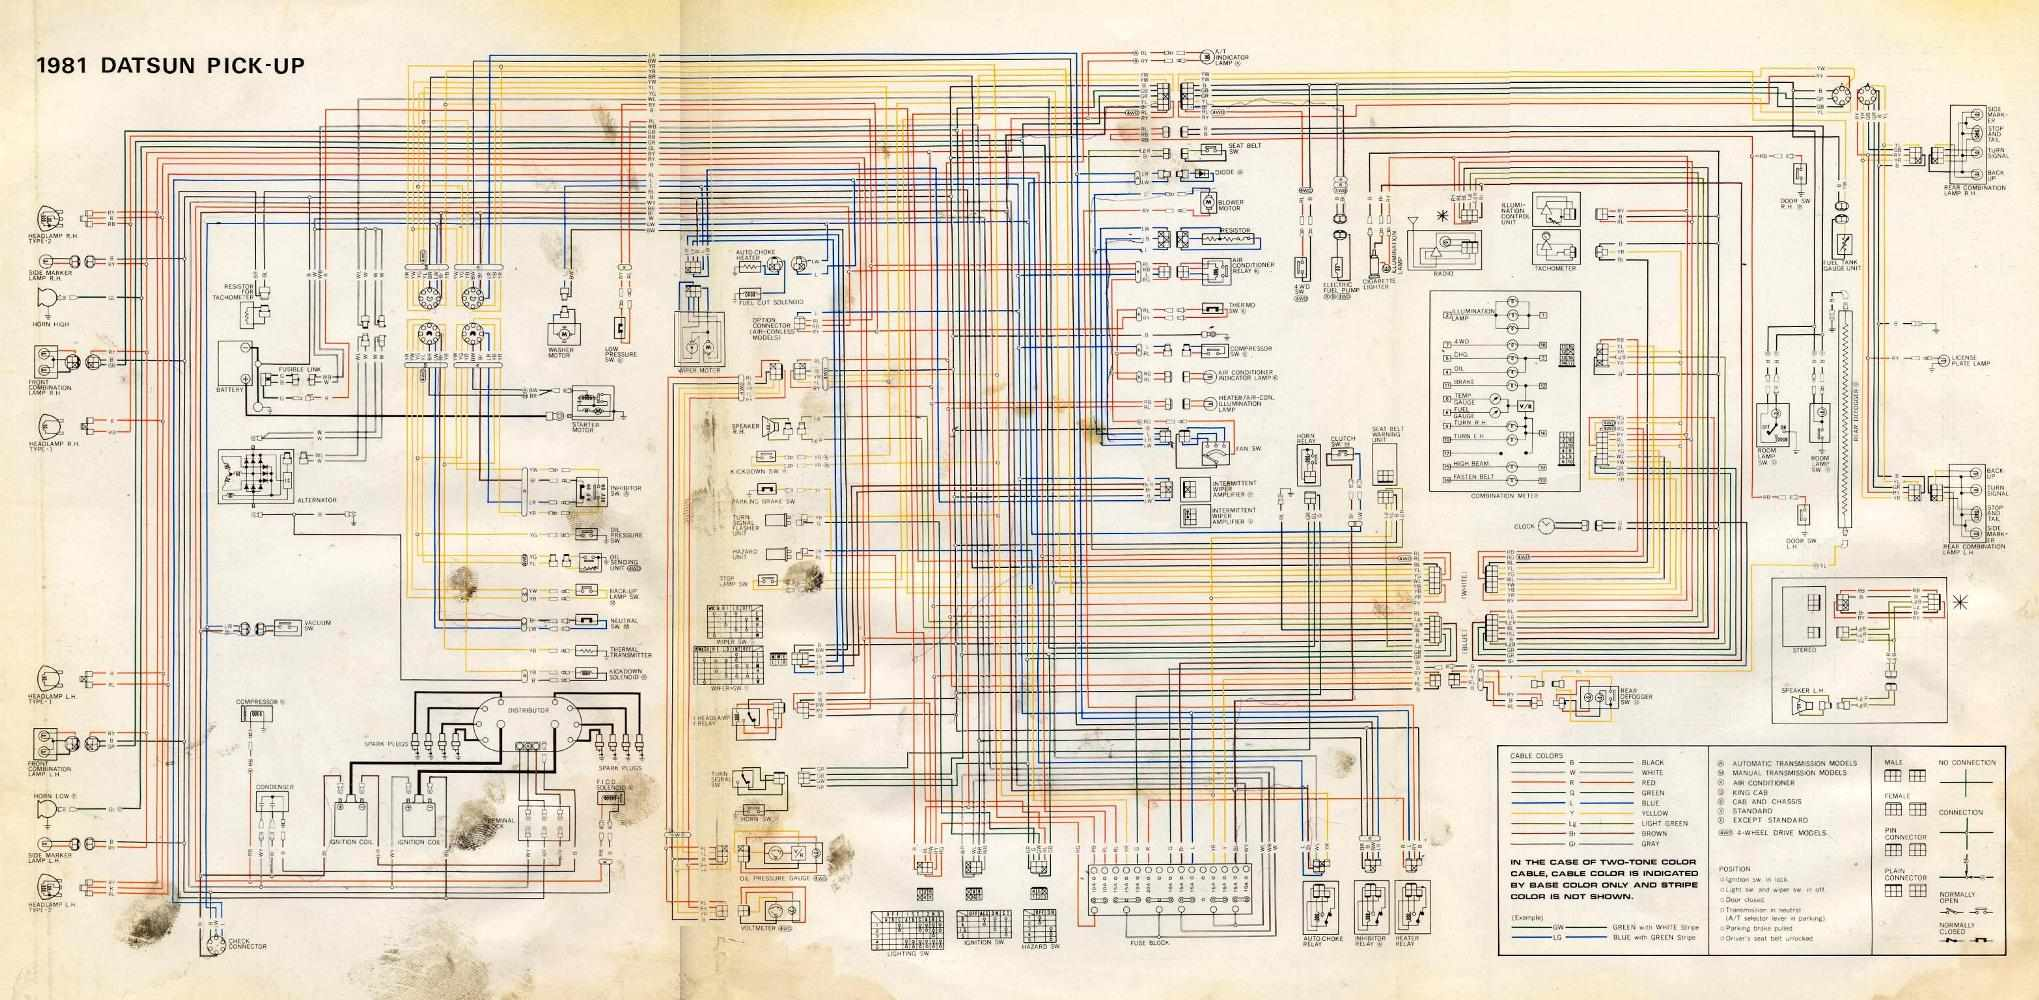 1983 Gmc Motorhome Wiring Diagram - Wiring Diagrams Schematics